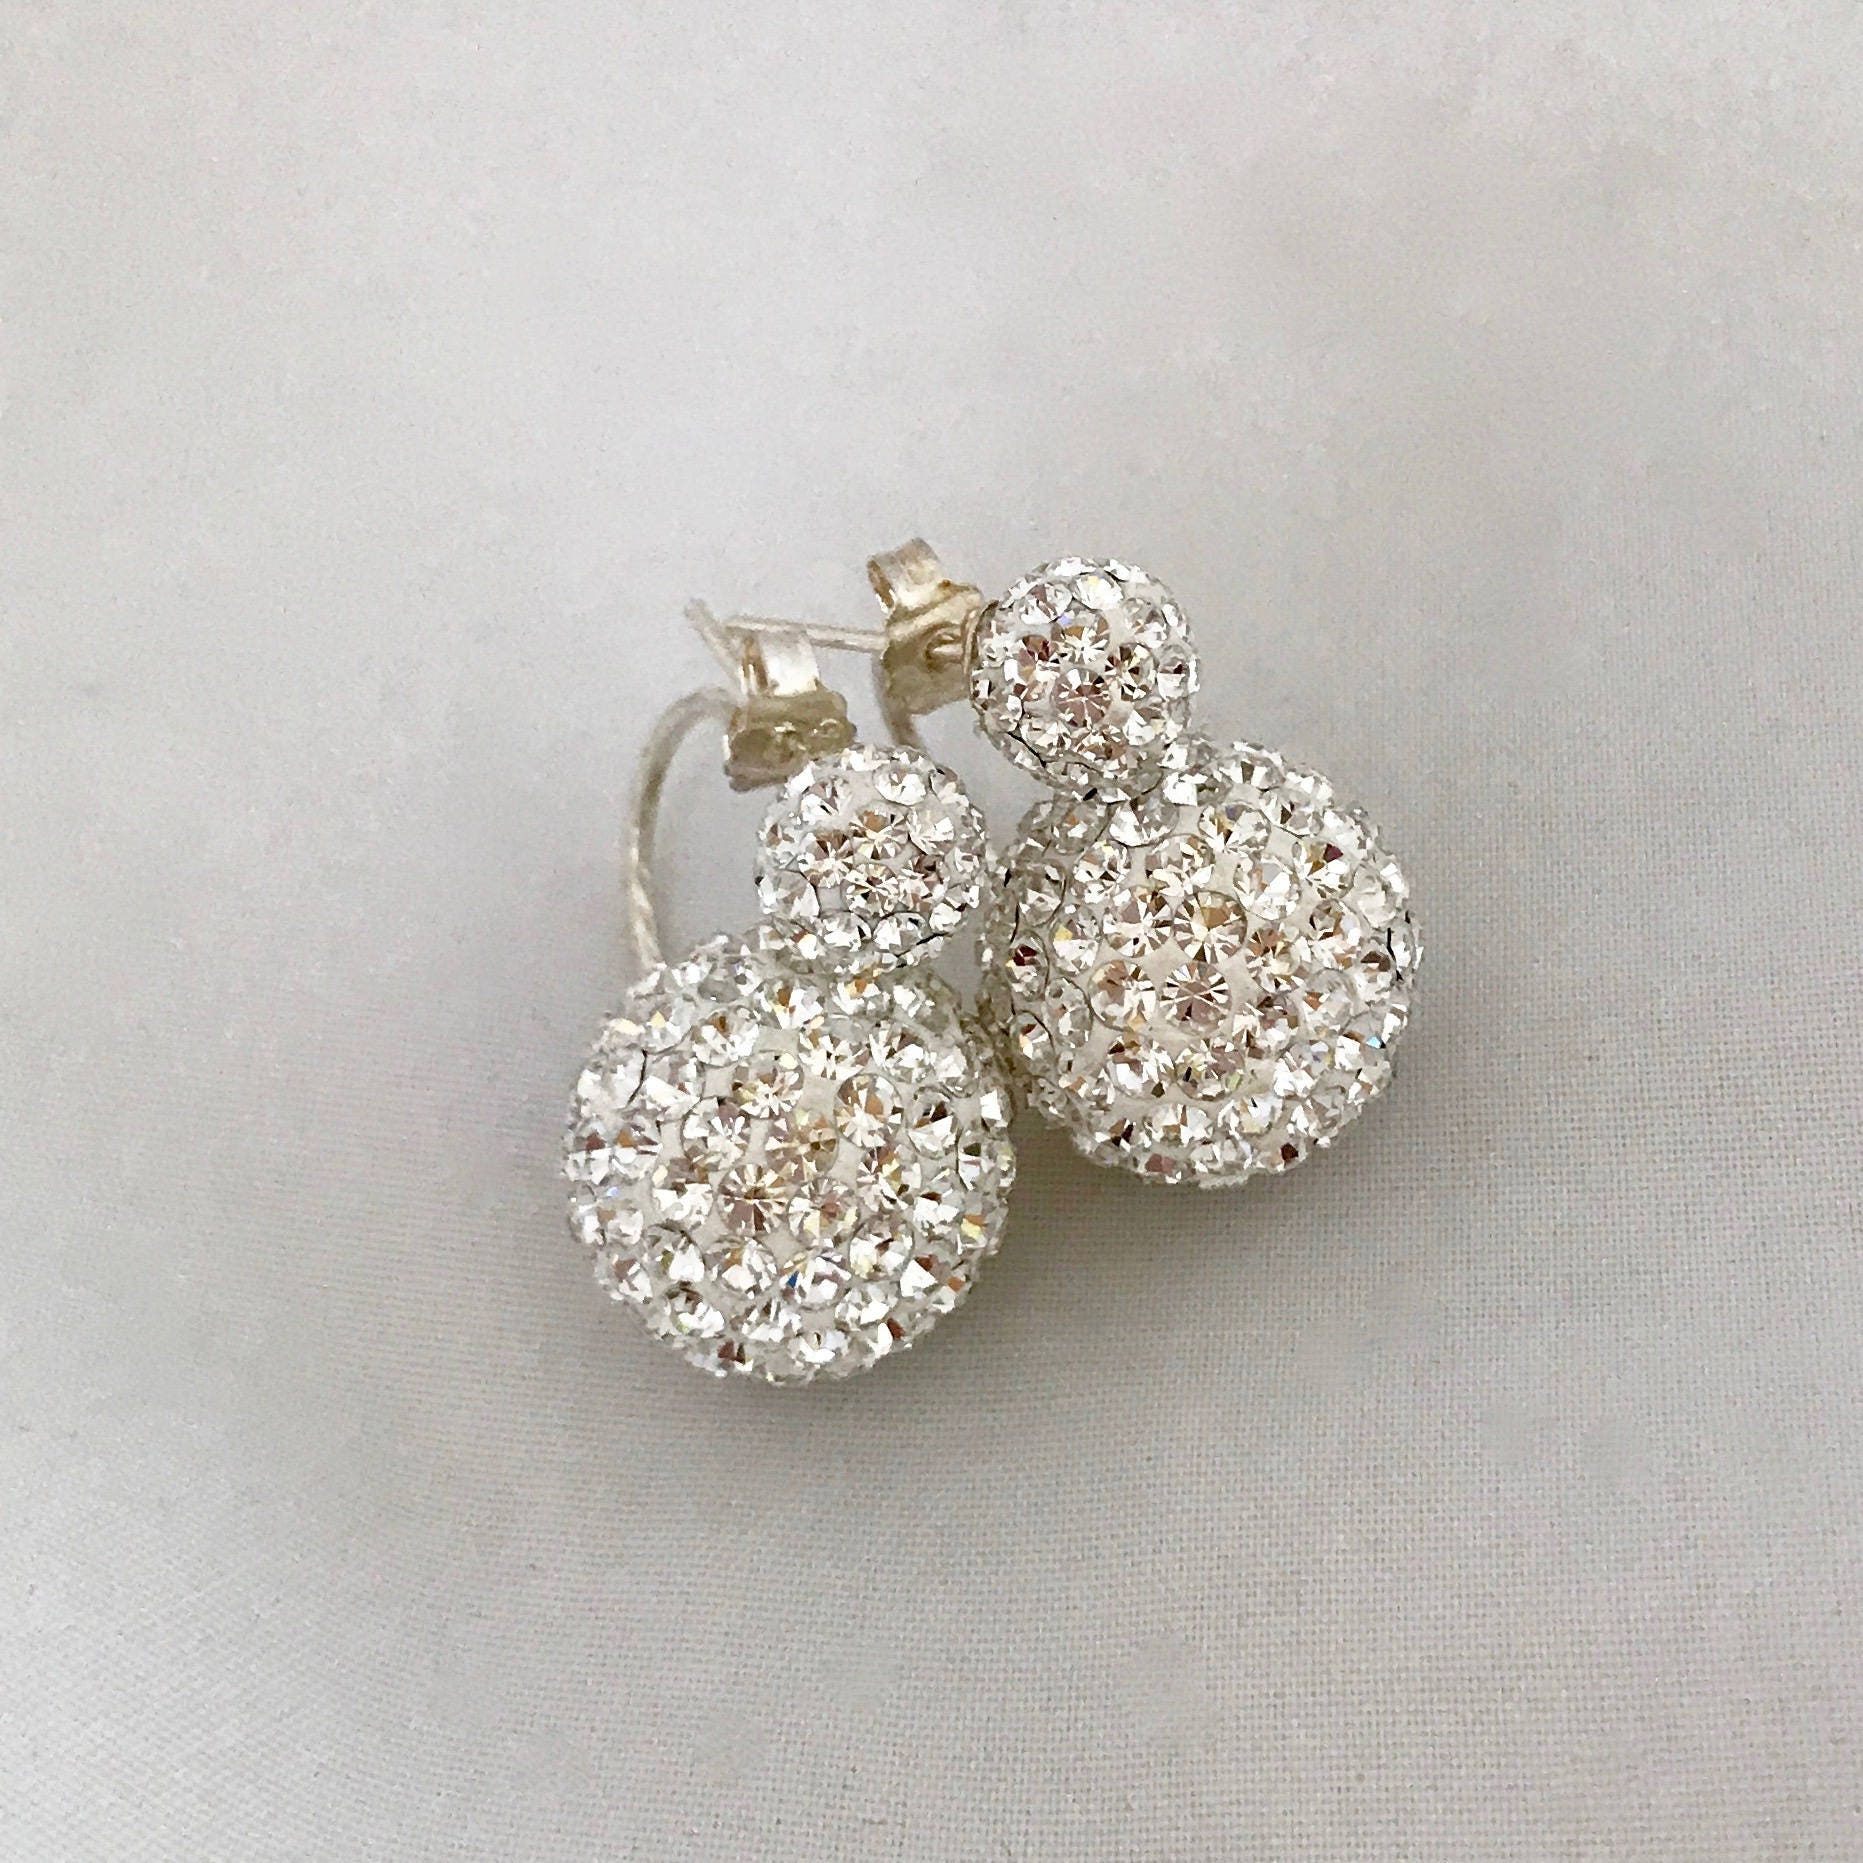 sparkly stud earring earrings